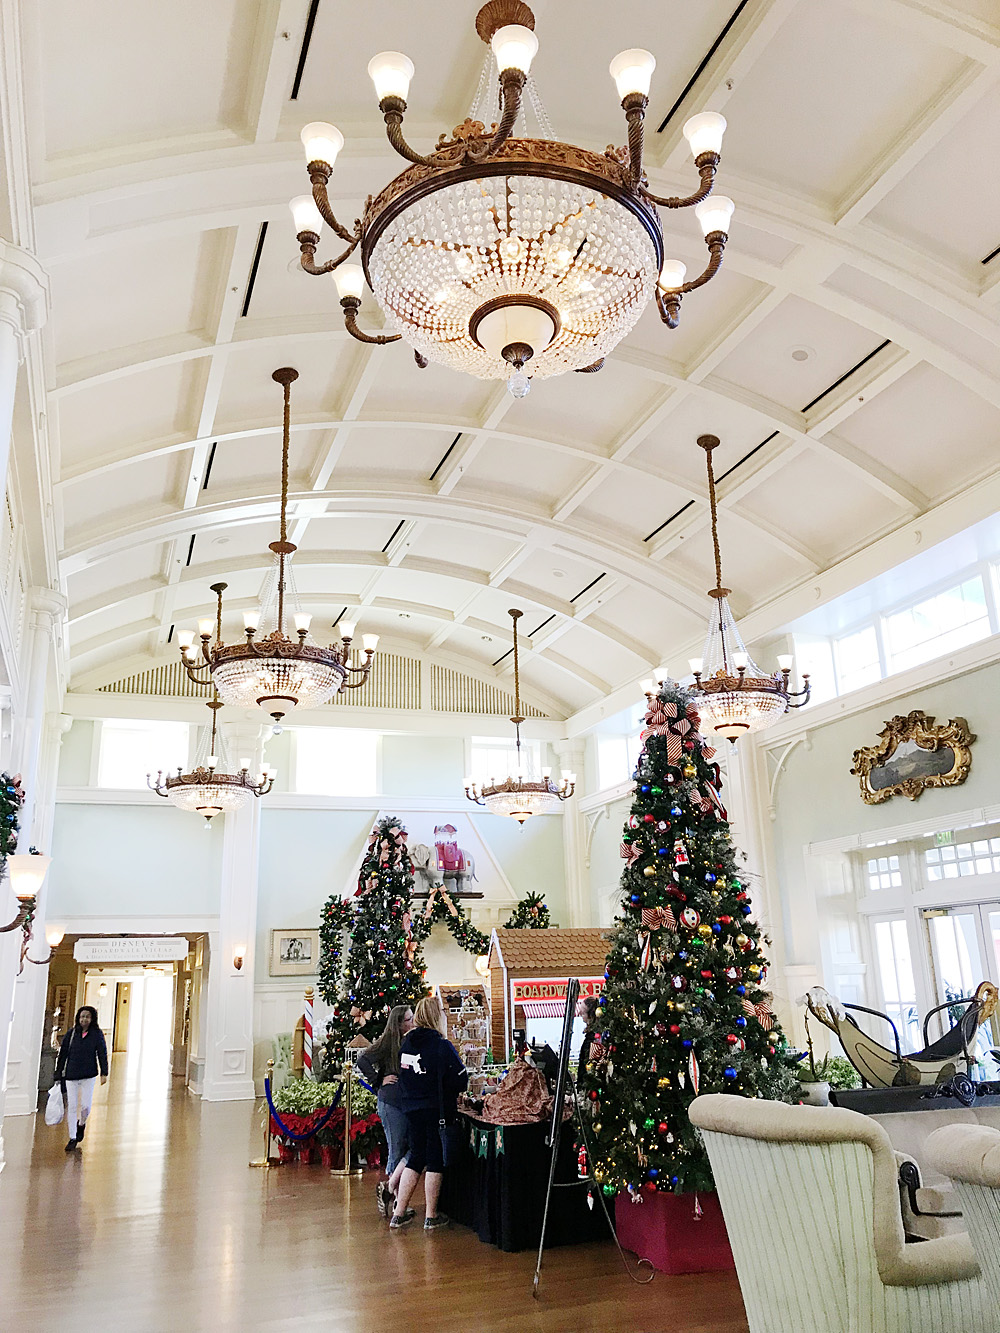 Disney's Boardwalk Inn at Christmas